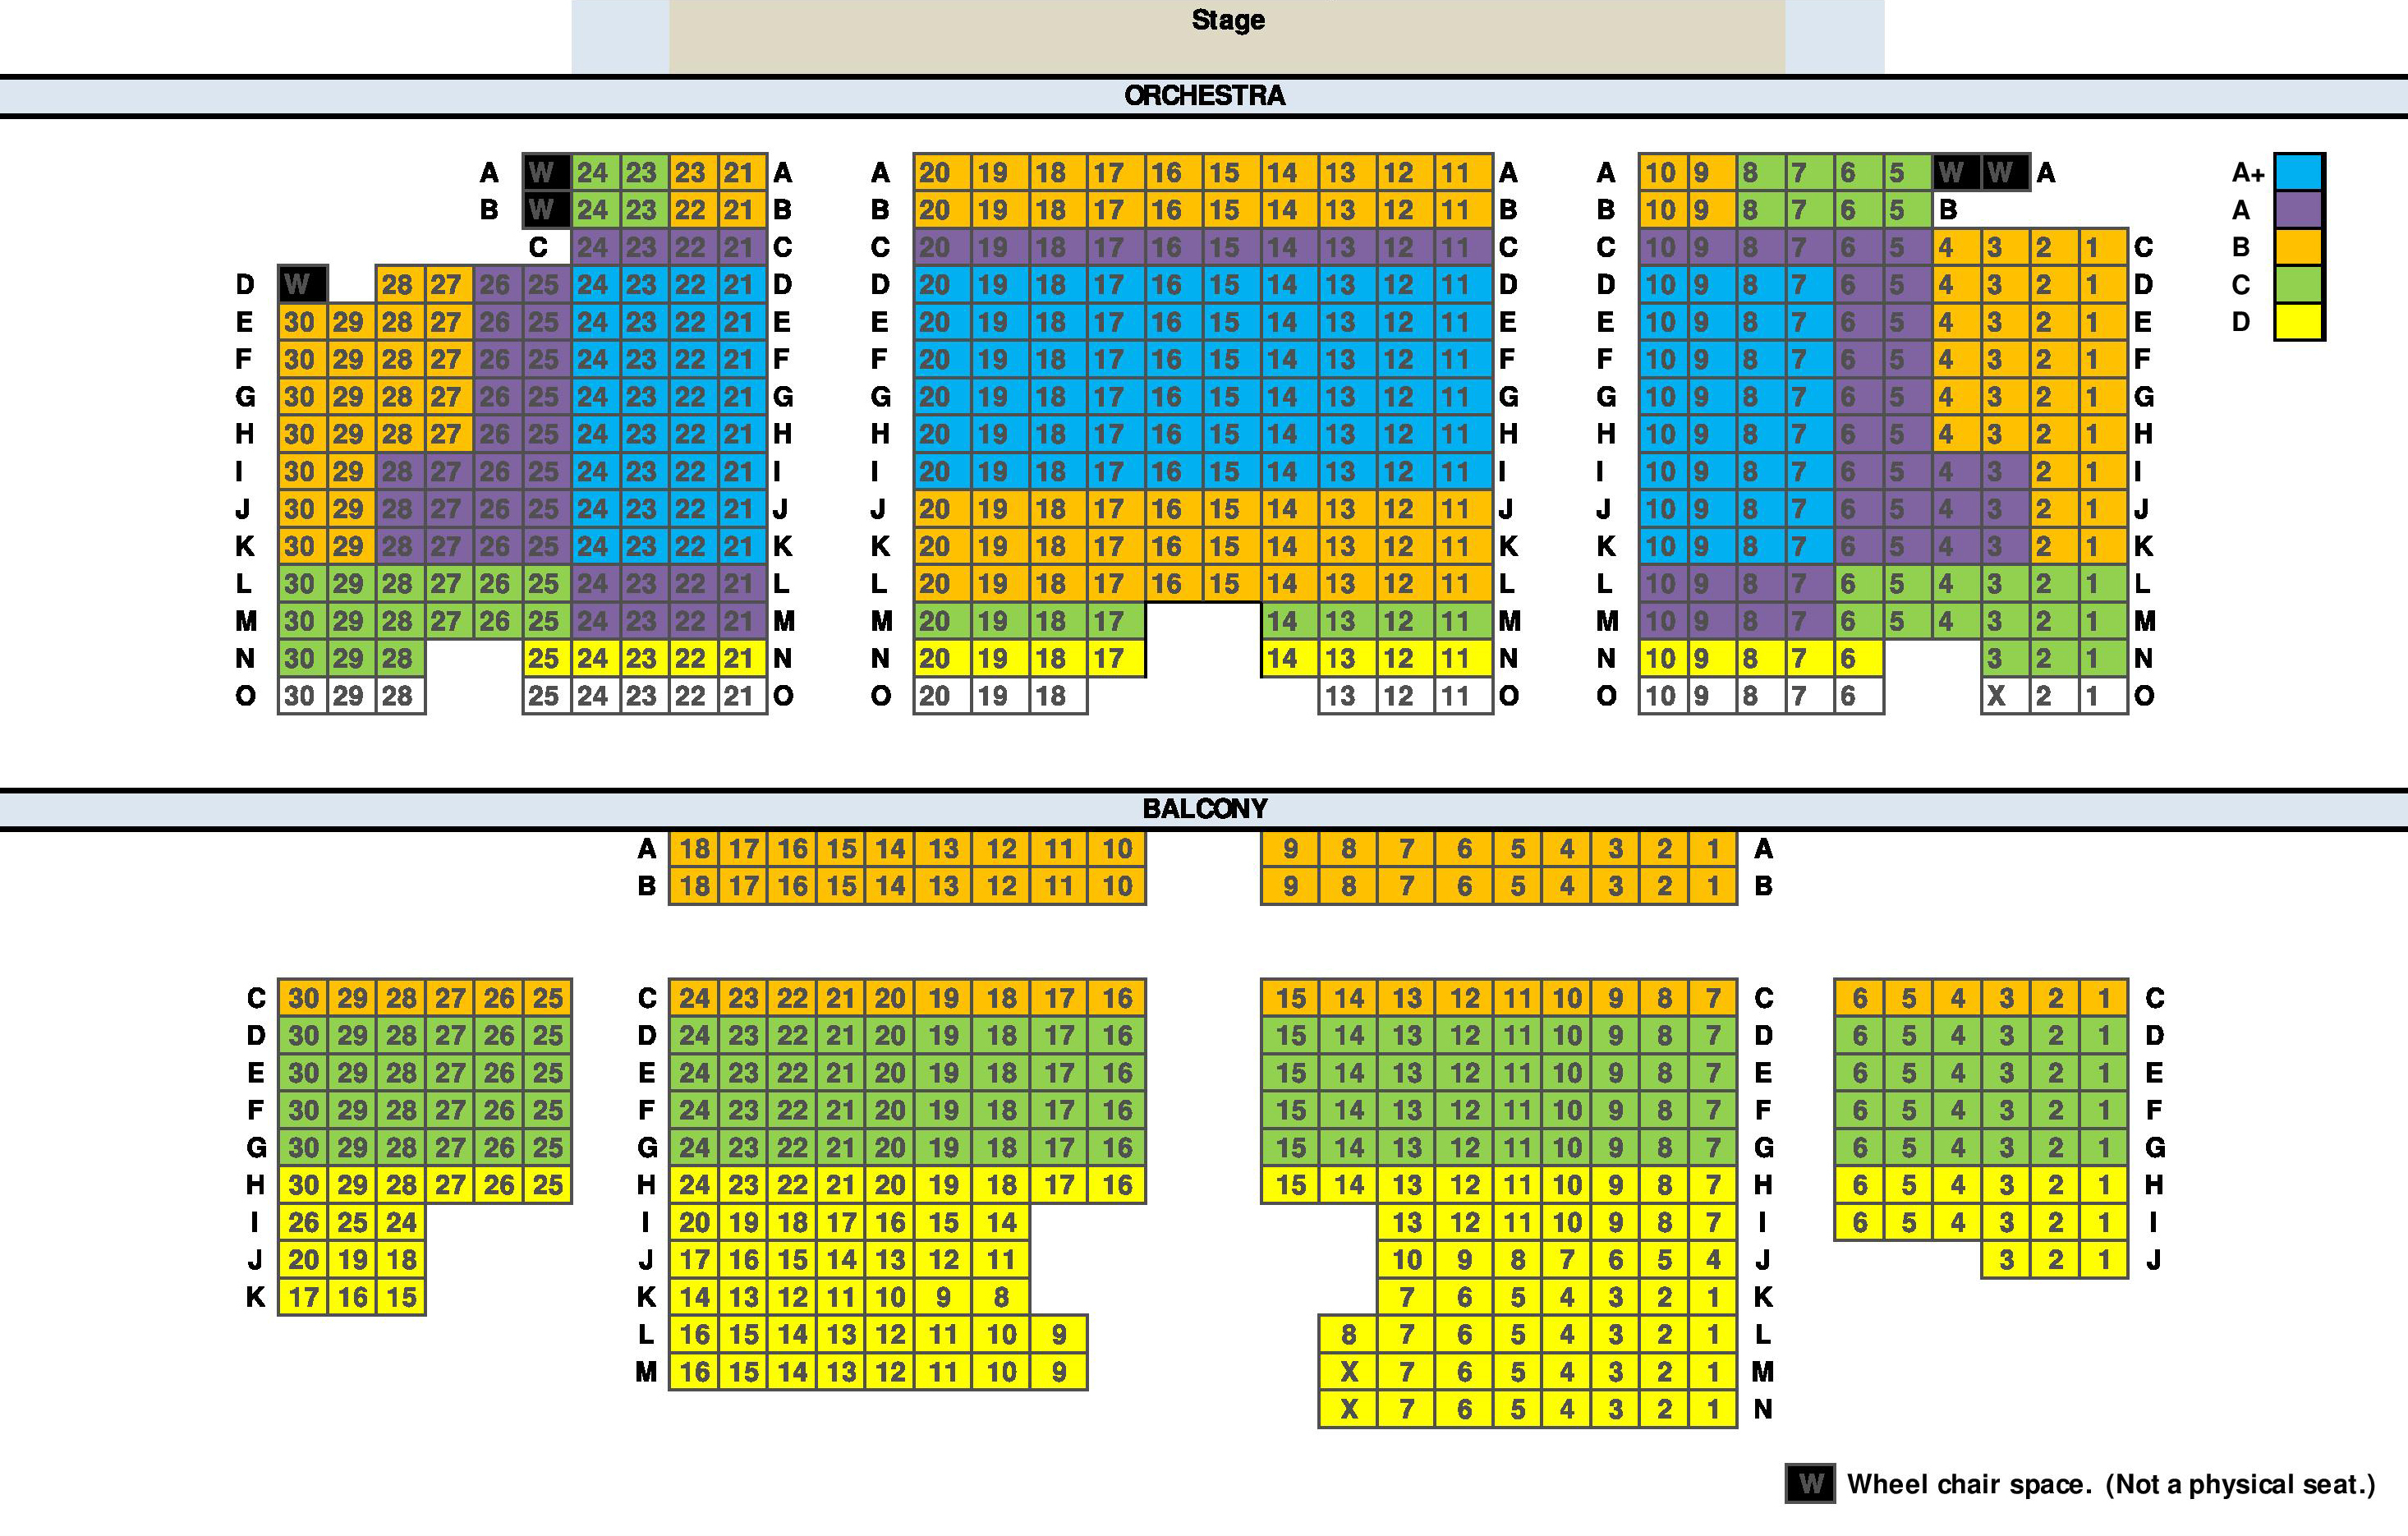 studebaker theater chicago tickets schedule seating charts gugu drums of shanghai